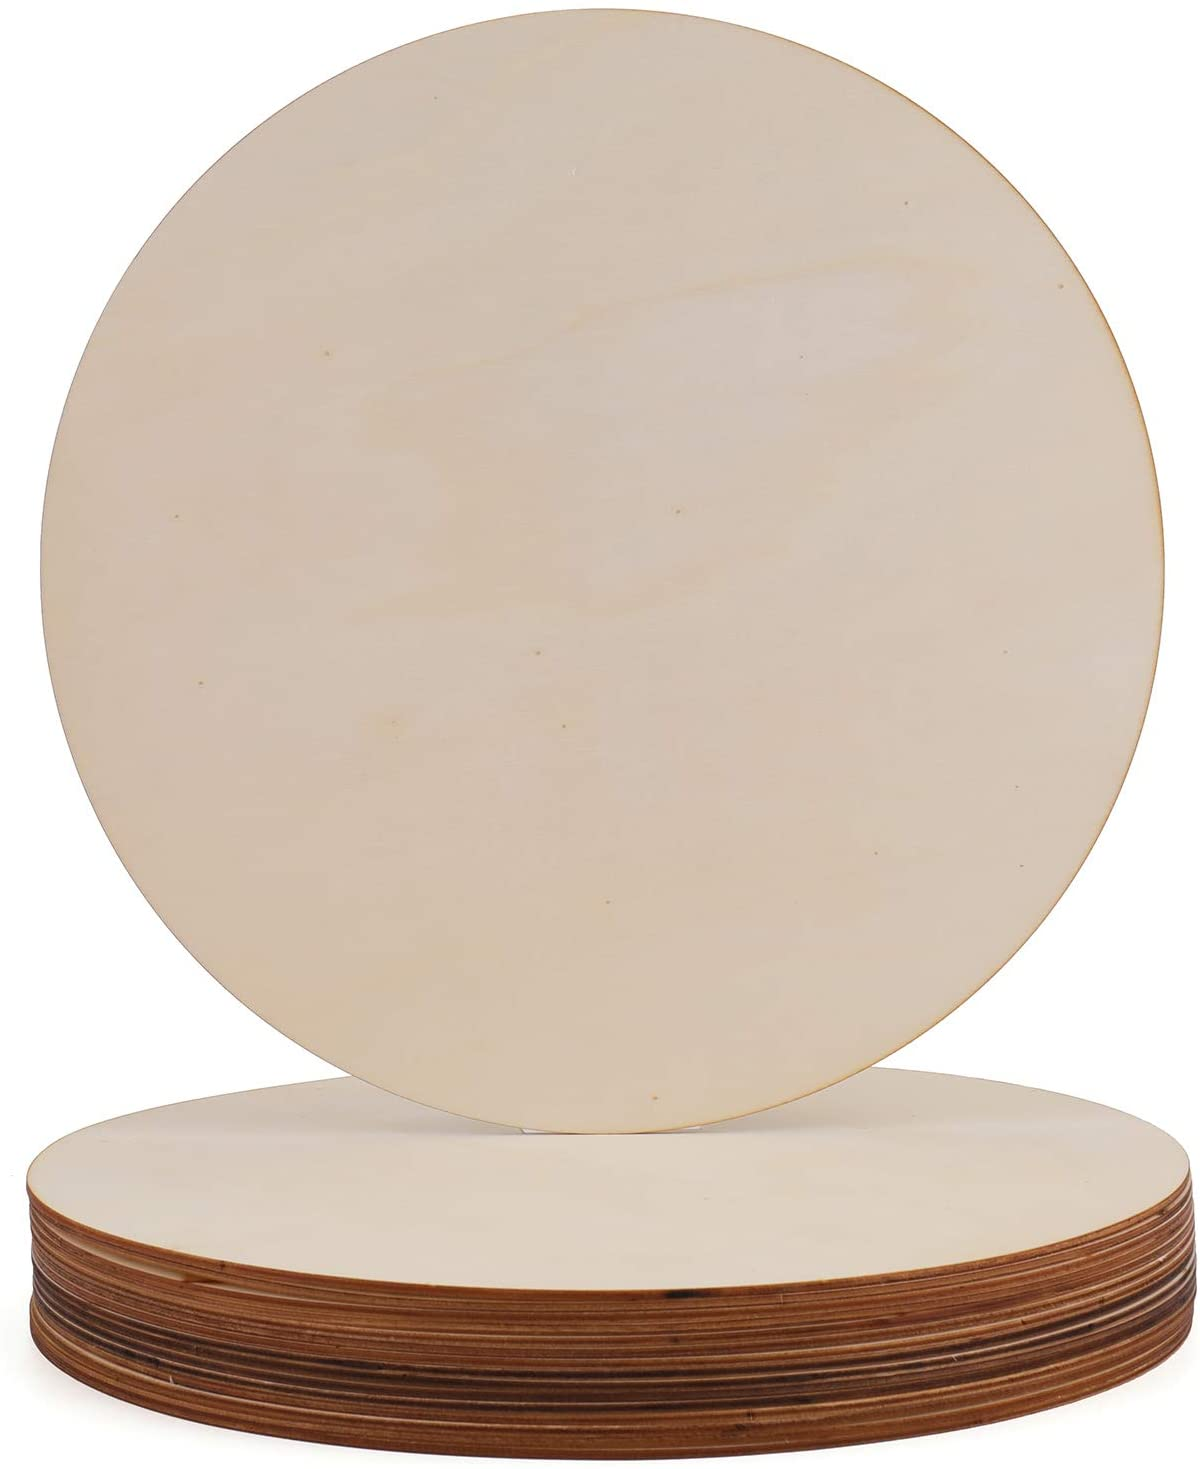 Foraineam 16 Pieces Unfinished Wood Circle Cutouts 11.8 Inch Round Natural Wooden Craft Circles Slices